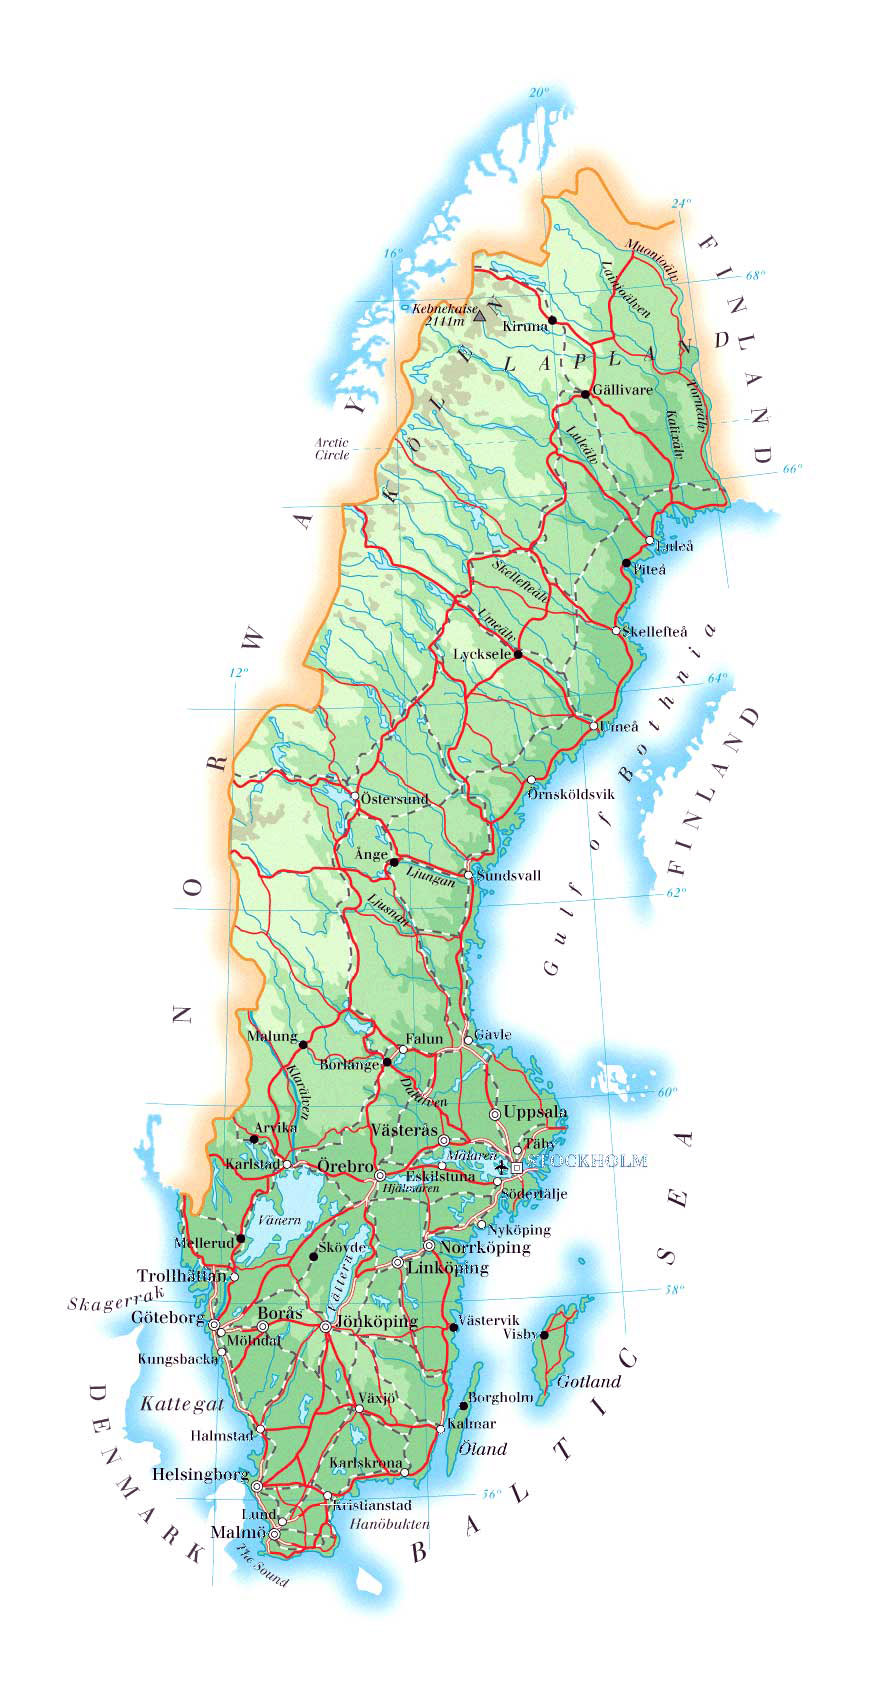 Ark Elevation Map.Large Detailed Physical Map Of Sweden With Roads Cities And